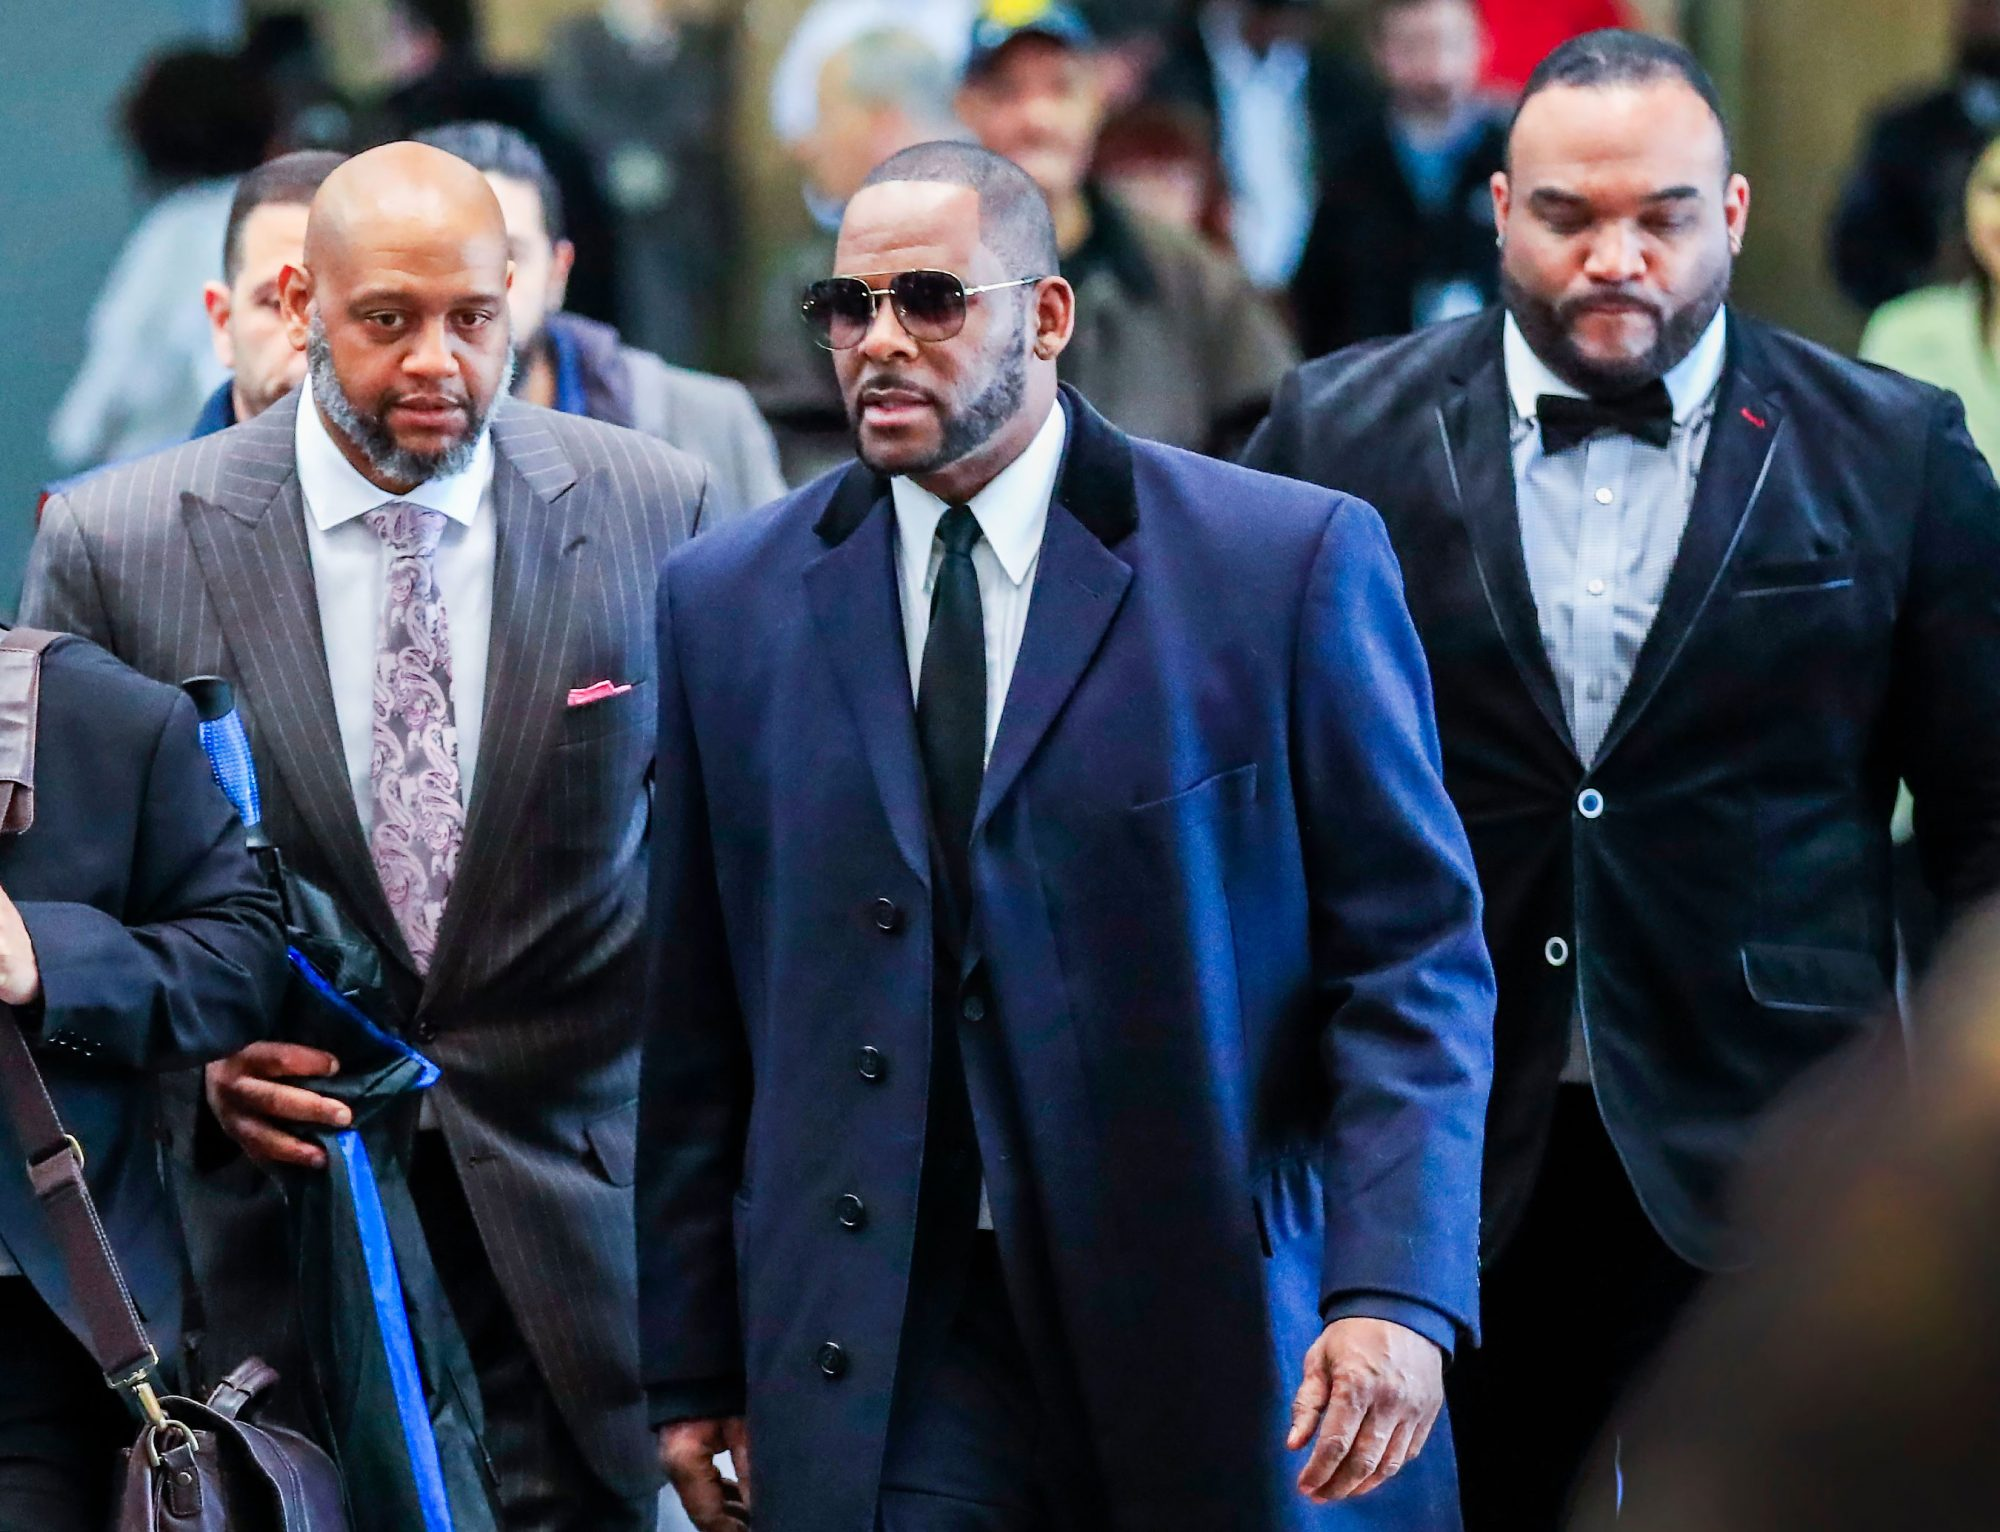 R. Kelly (C) walks to the Layton Criminal Courts building for a status hearing on his sexual assault charges in Chicago, Illinois, USA, 07 May 2019.